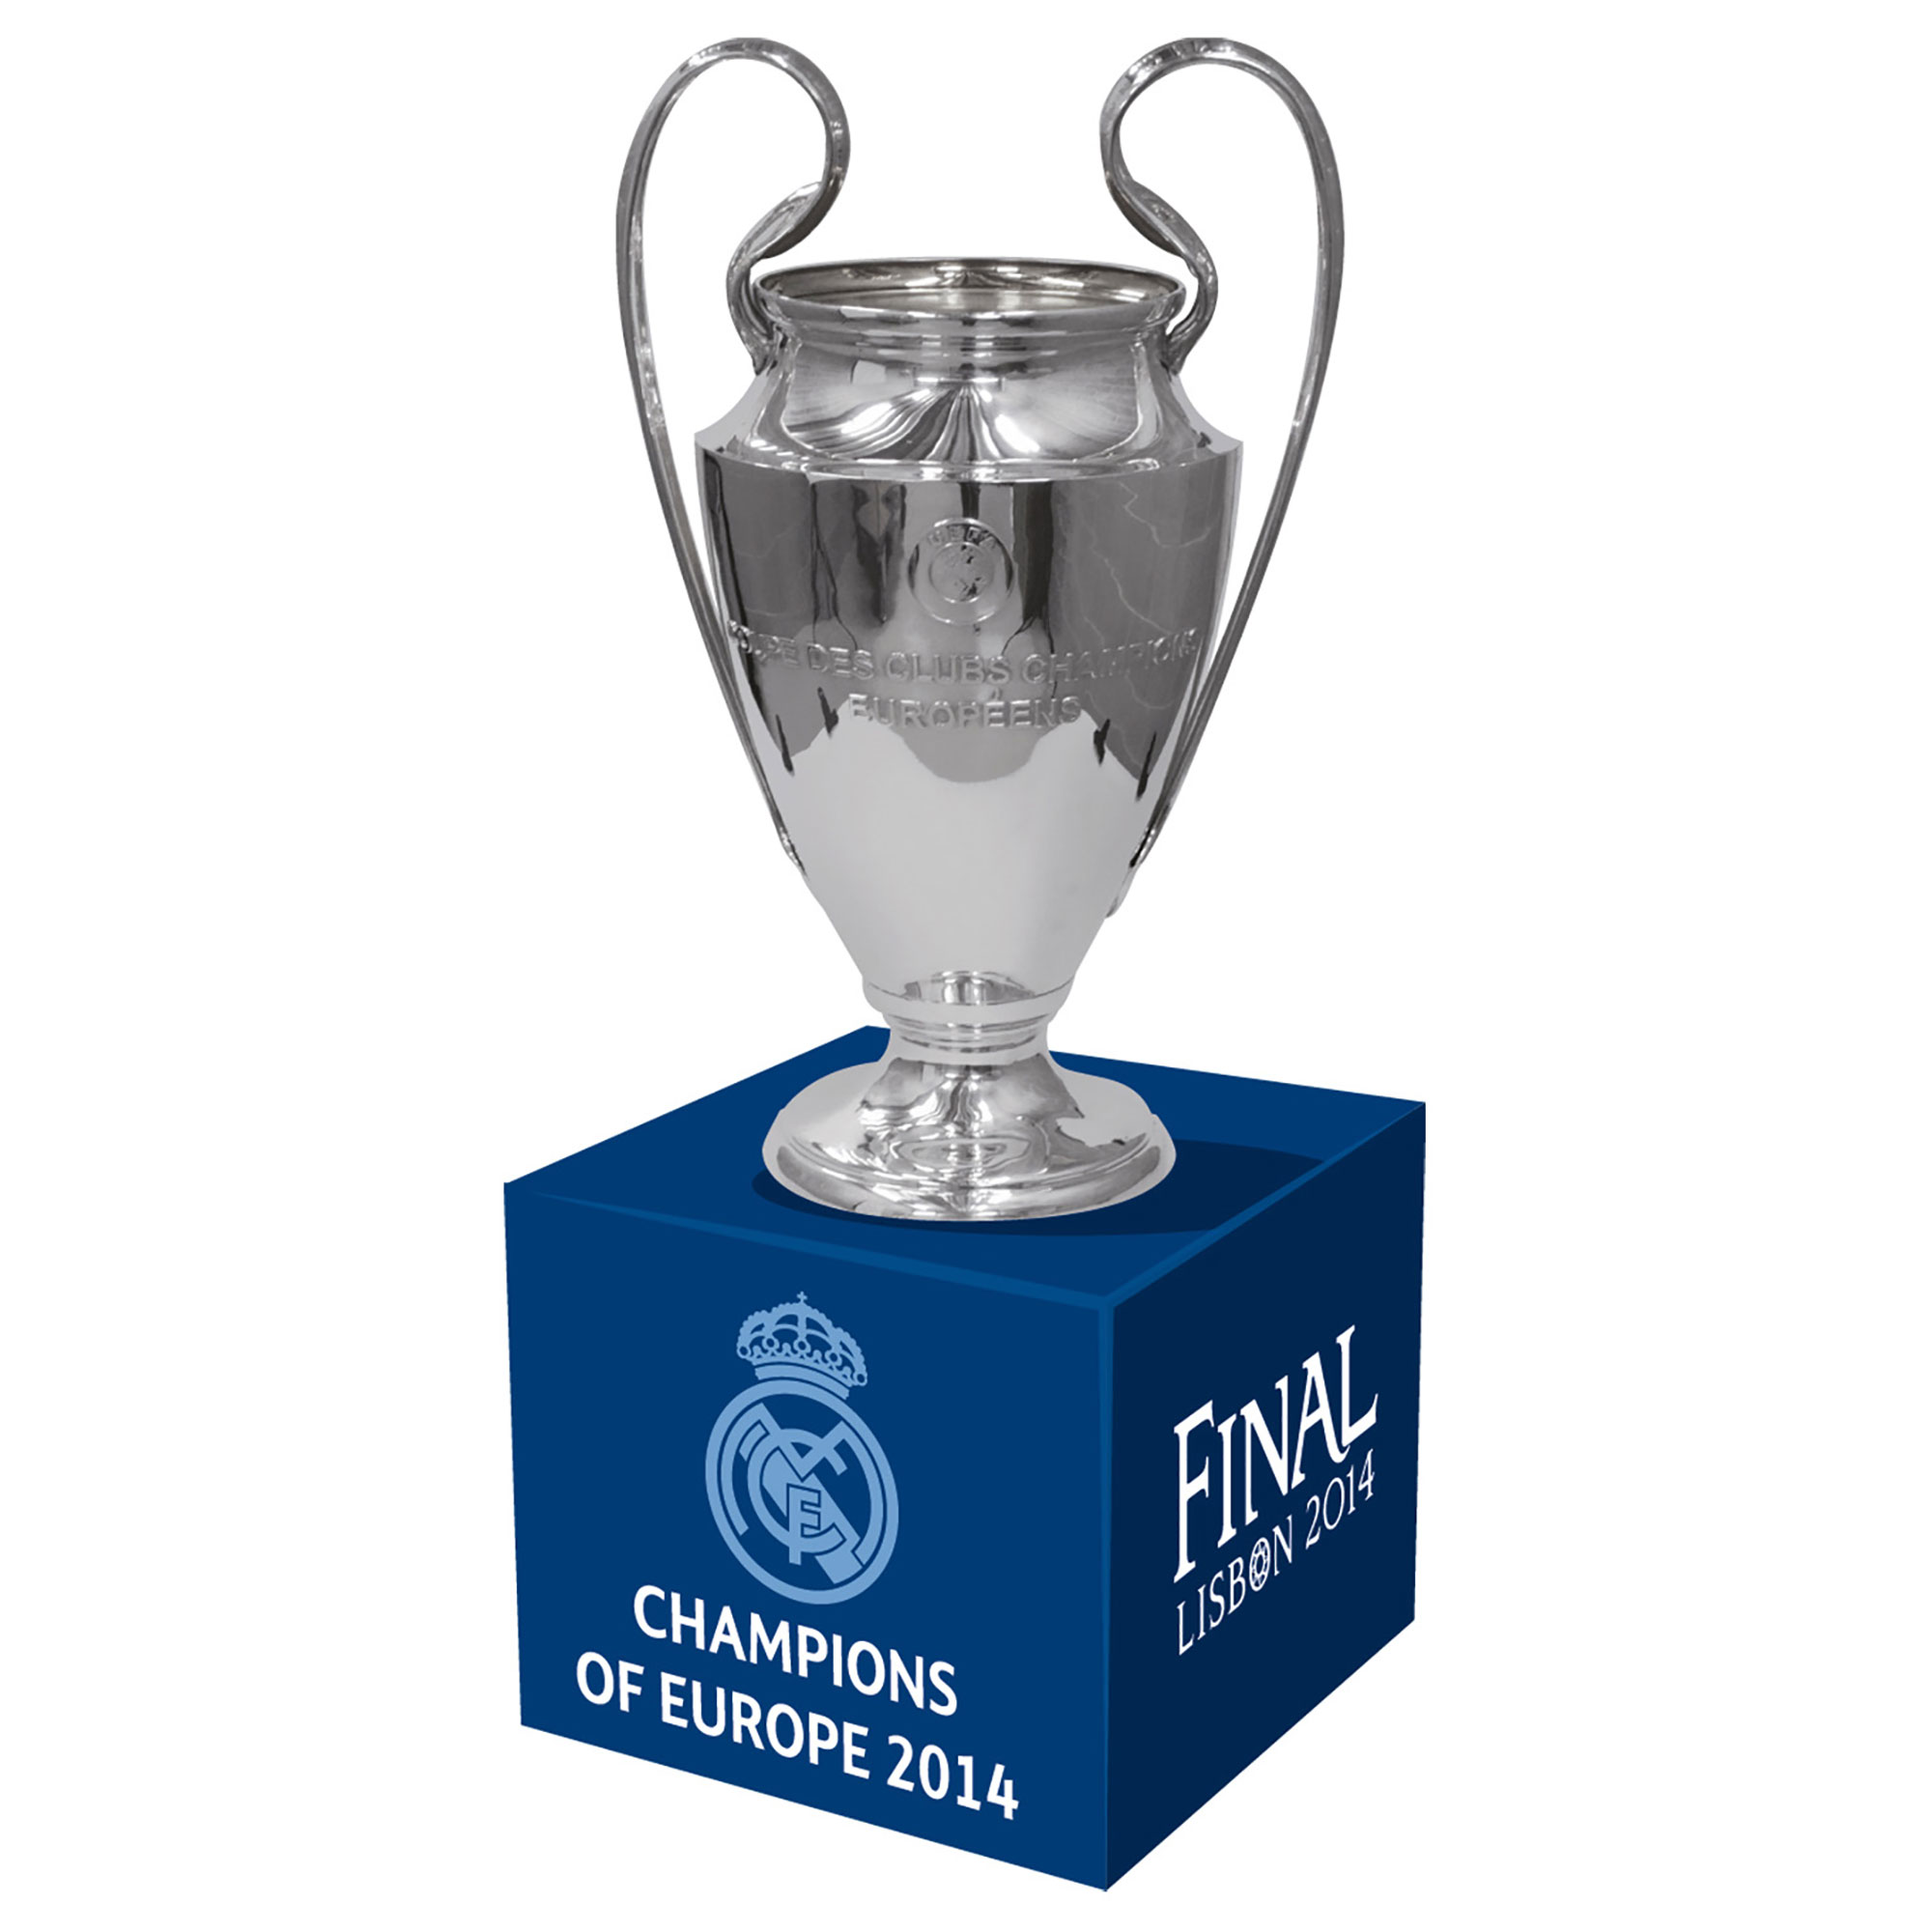 Image of Real Madrid 2014 Champions of Europe Trophy on Wooden Pedestal - 70mm